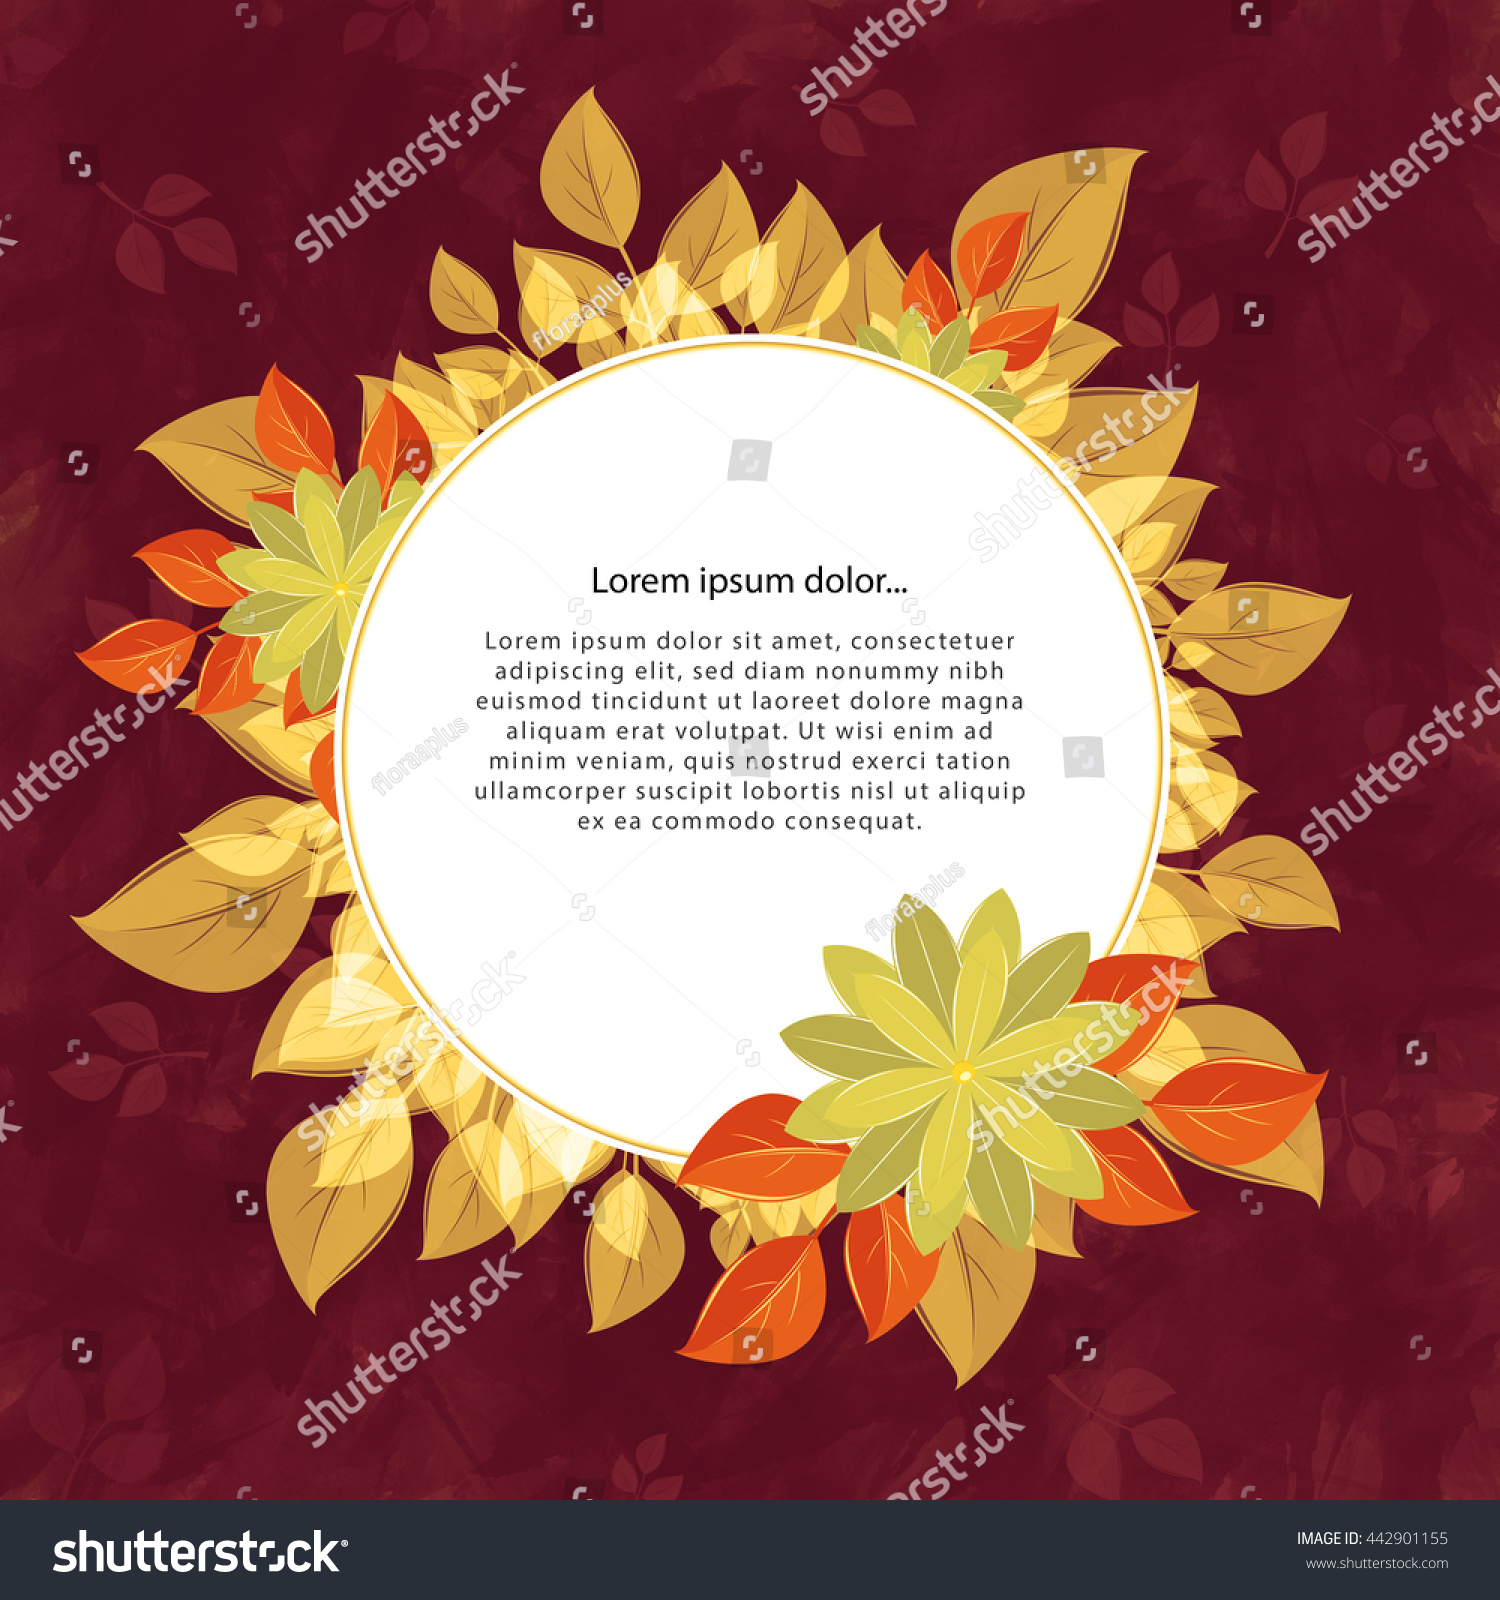 https://image.shutterstock.com/z/stock-photo-round-flower-frame-for-the-text-yellow-and-cherry-a-form-against-a-dark-background-with-leaves-442901155.jpg